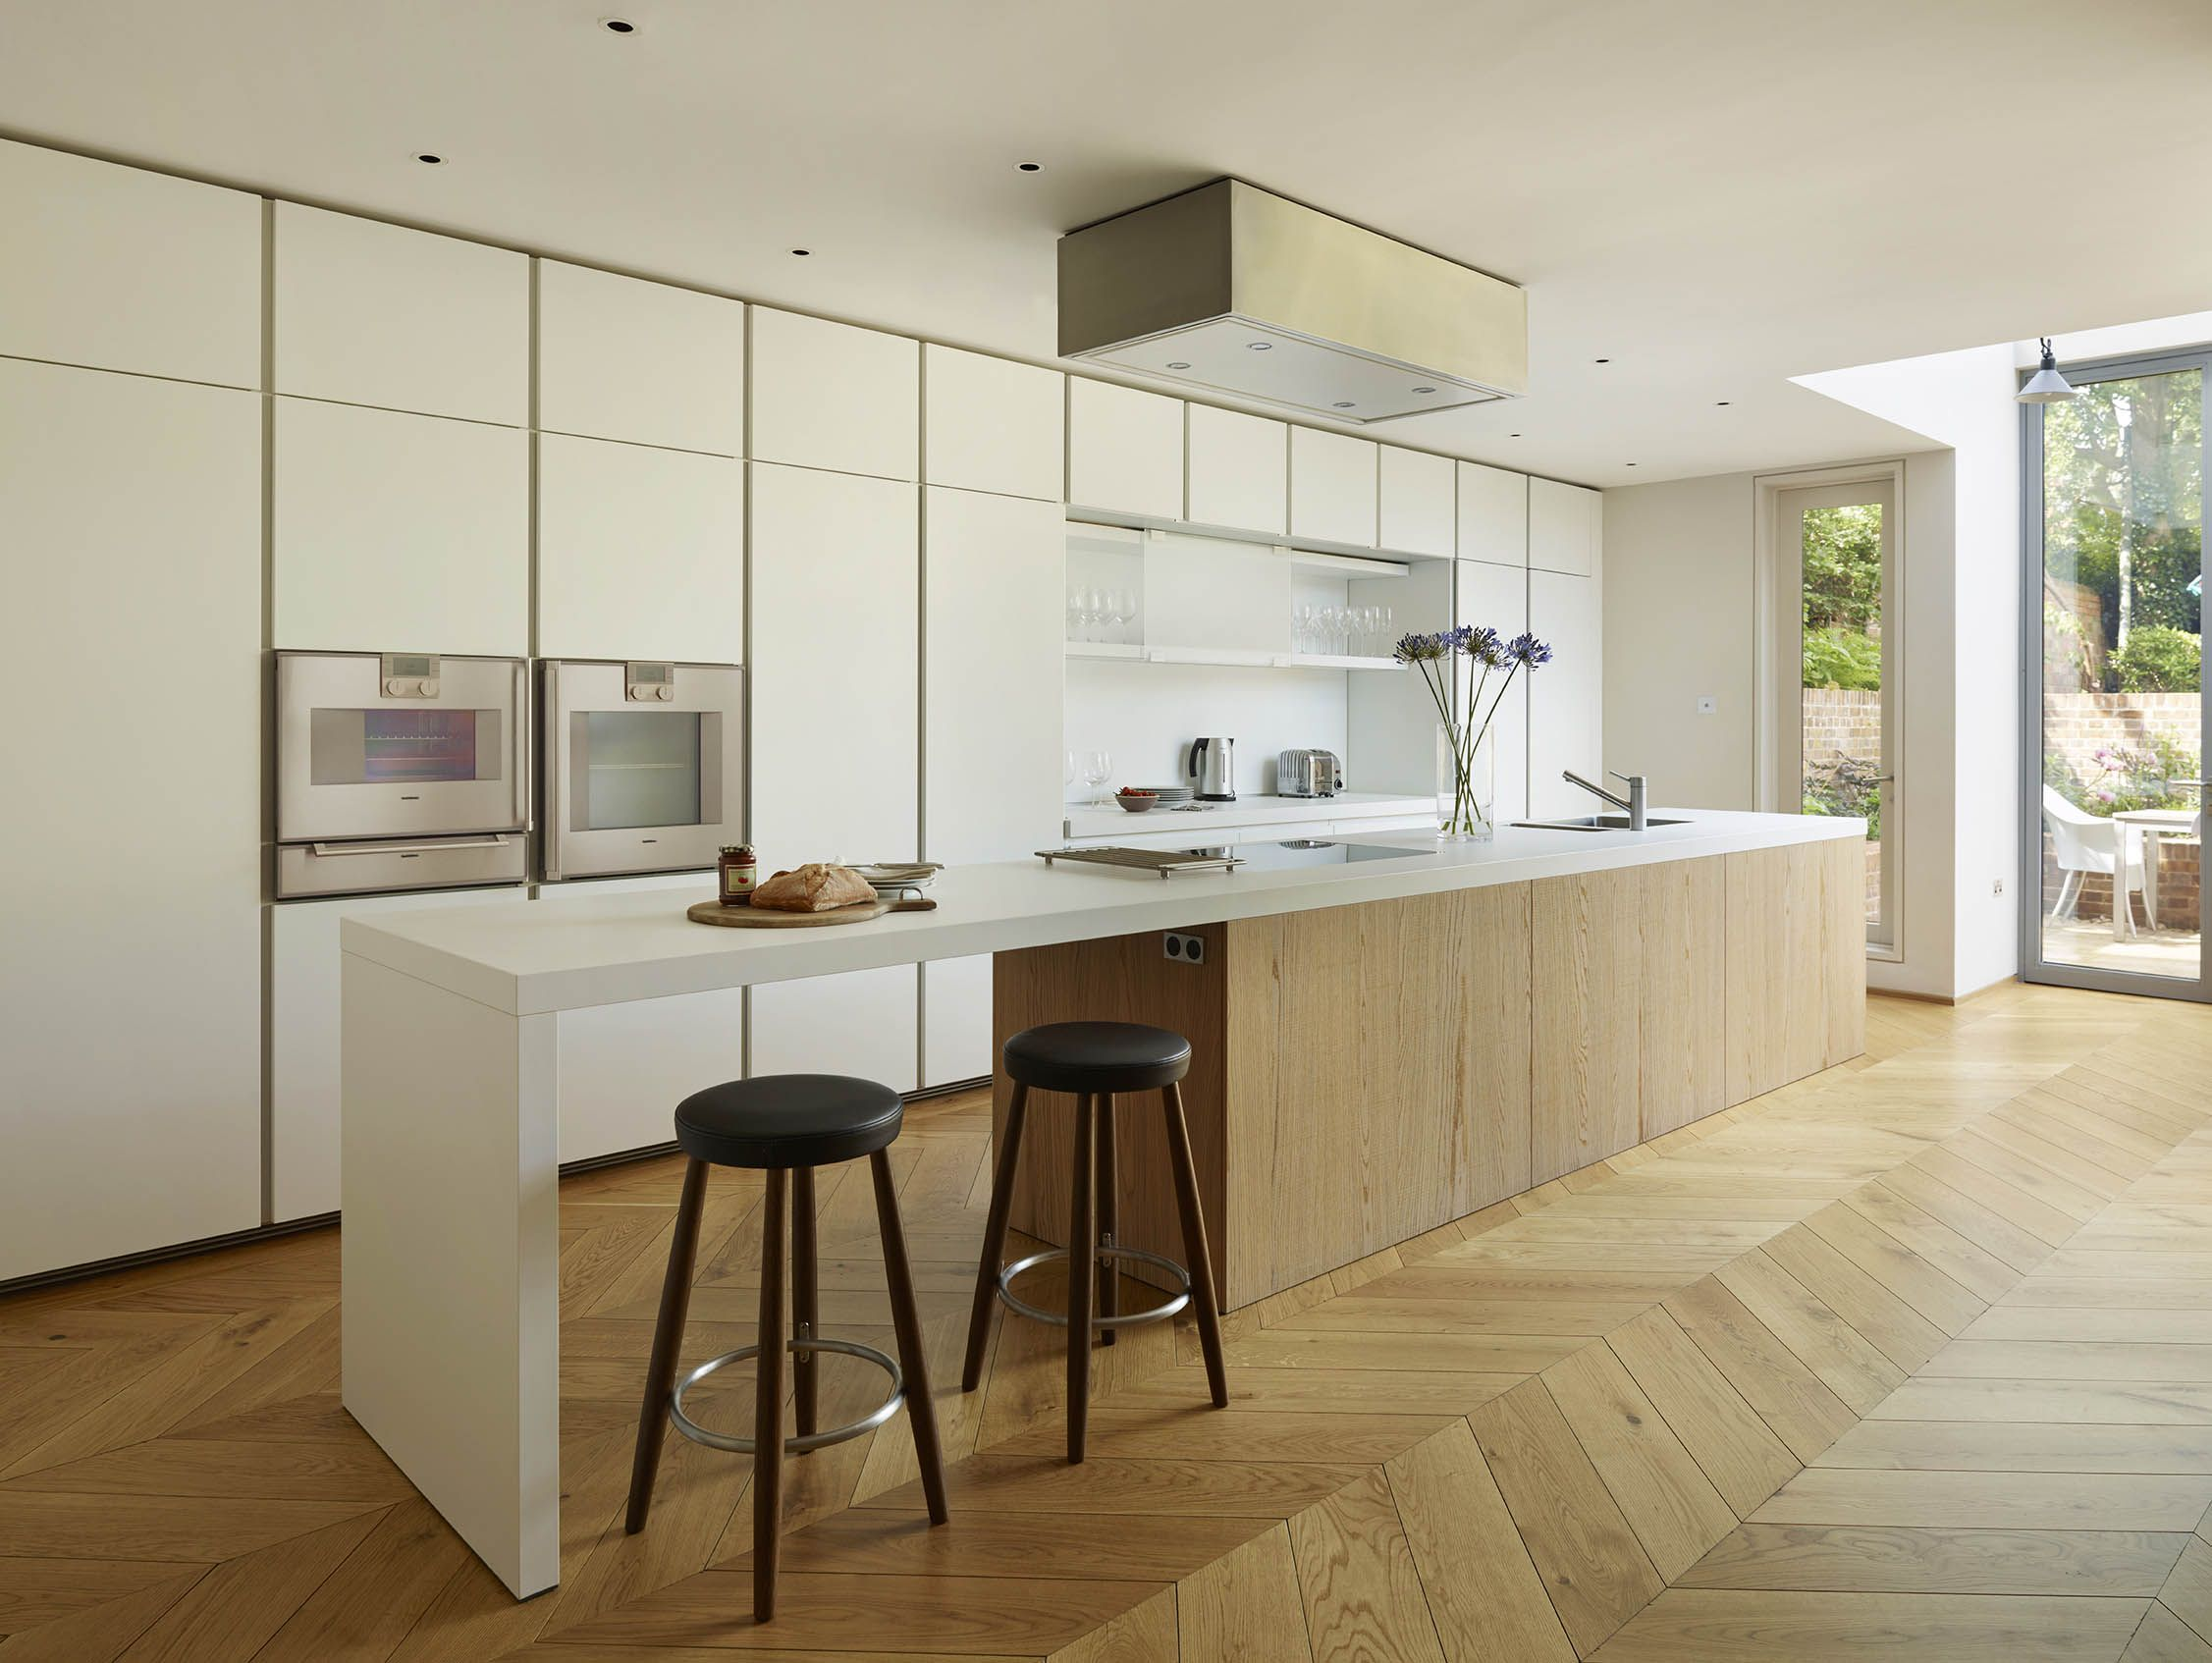 Bulthaup by kitchen architecture #kitchens #b1 borrisdale house